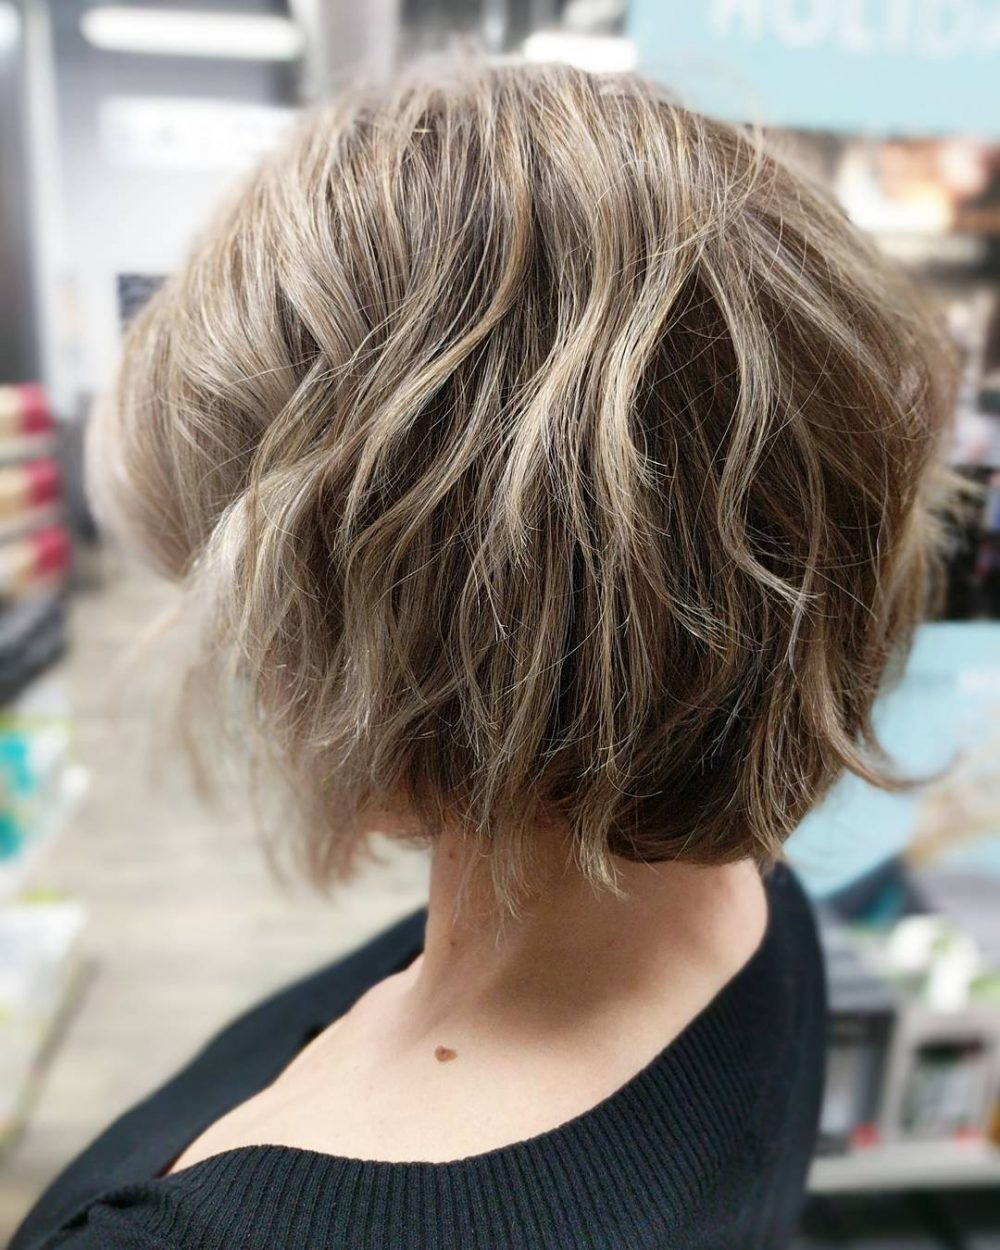 41 Perfect Short Hairstyles For Fine Hair 2018 Trends